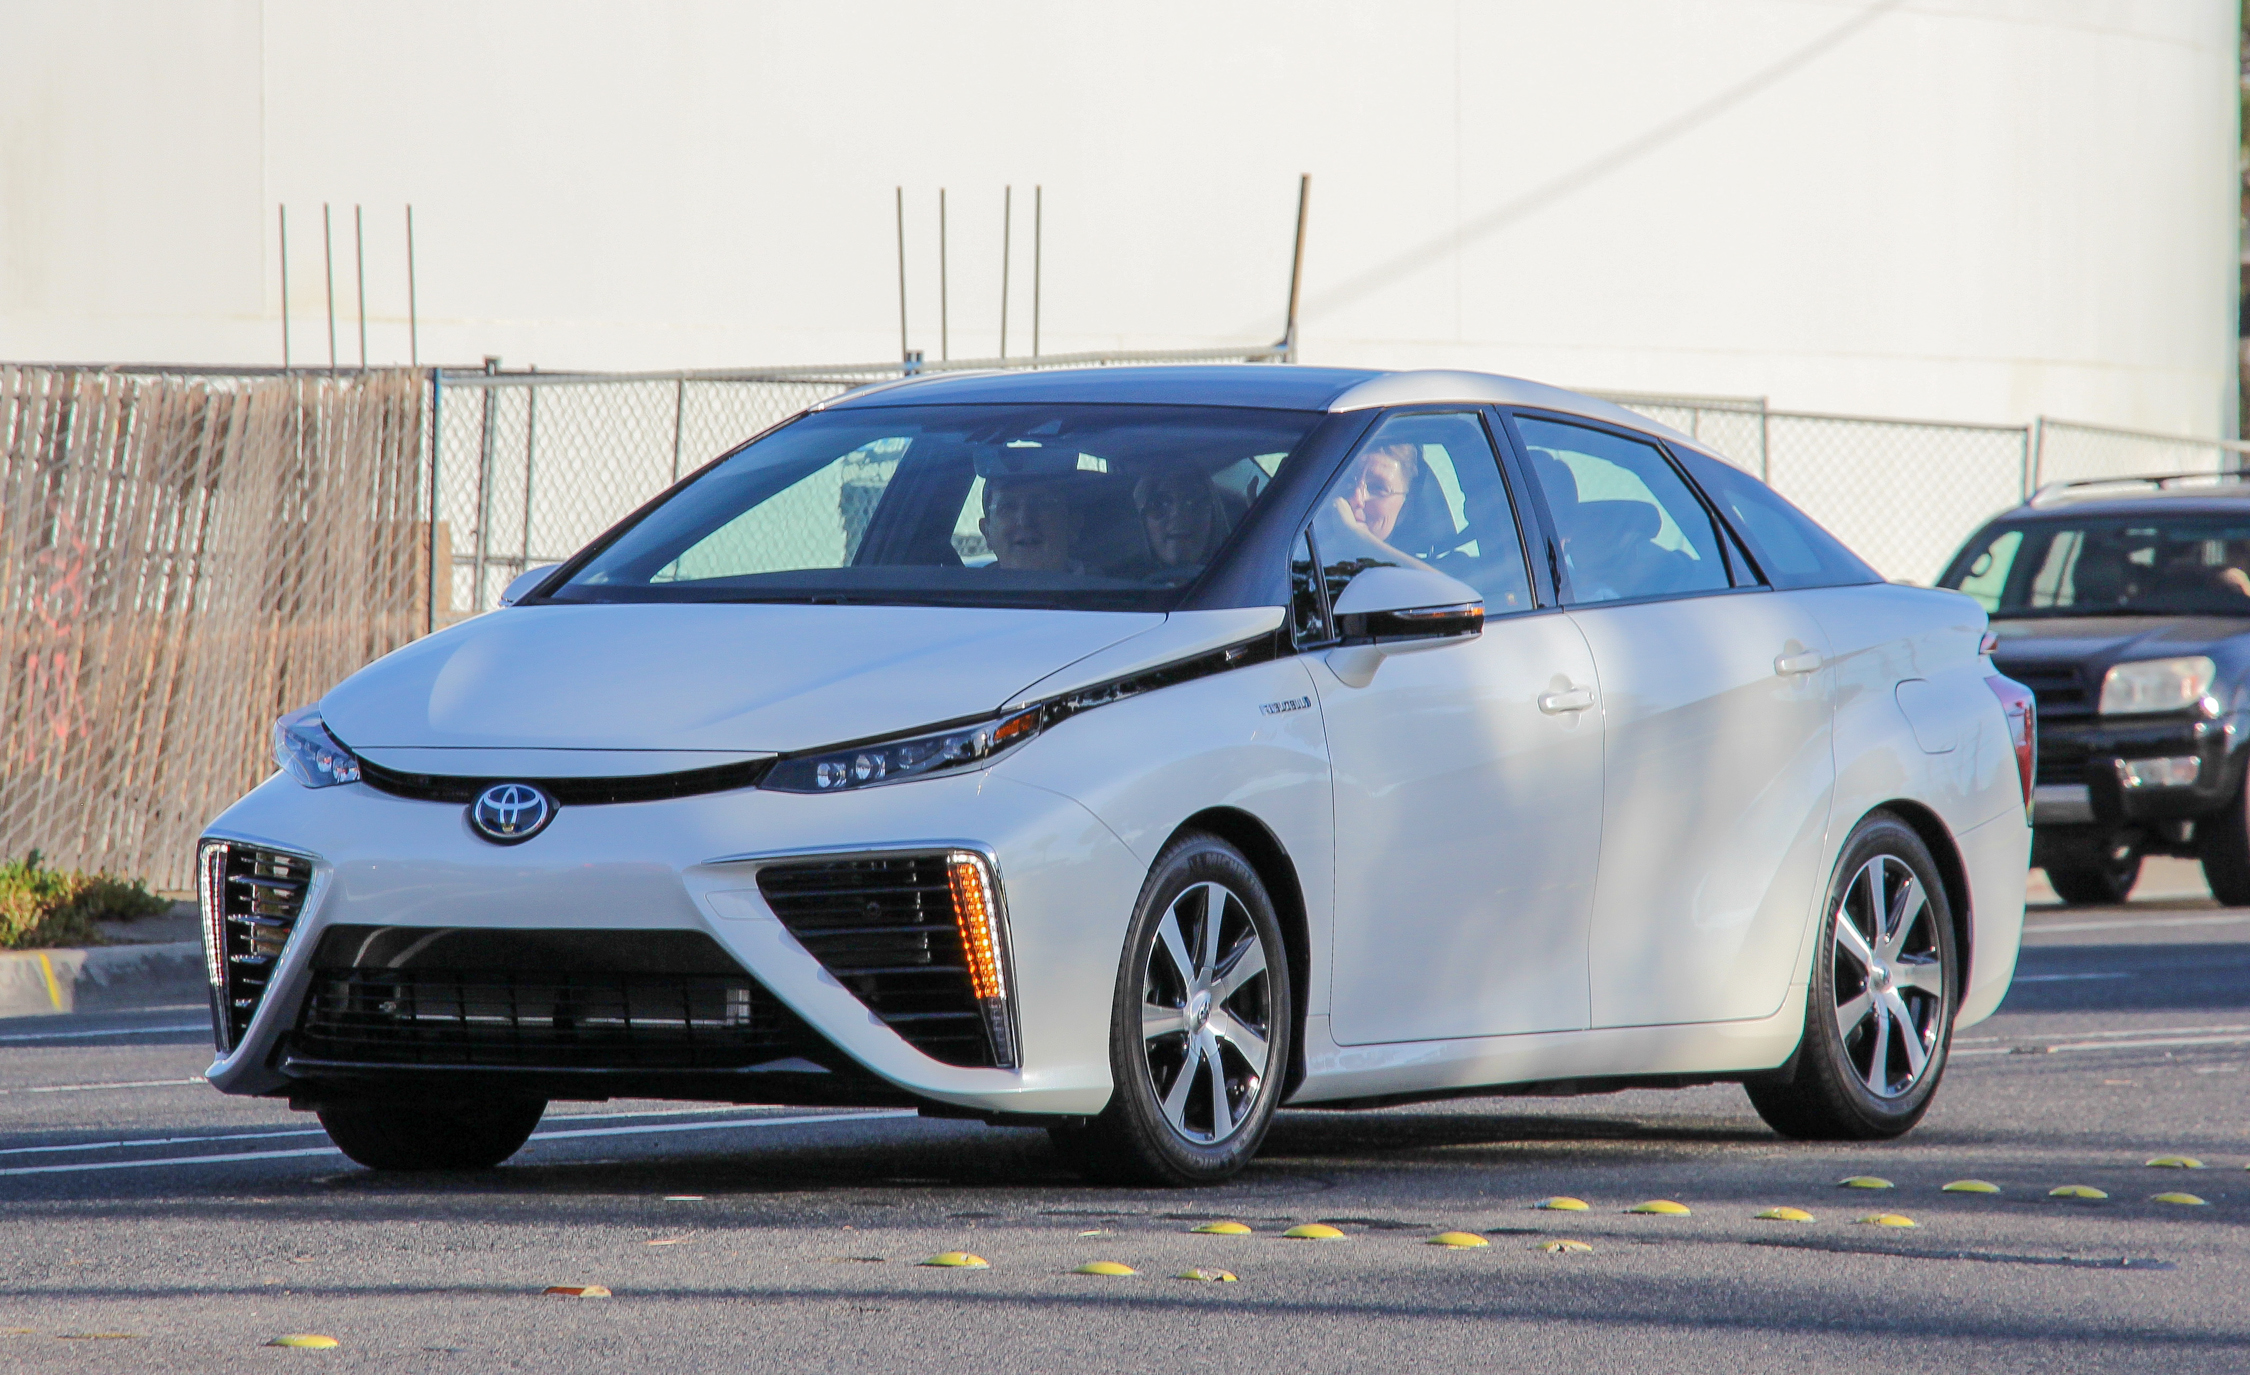 2016 Toyota Mirai White (View 4 of 18)